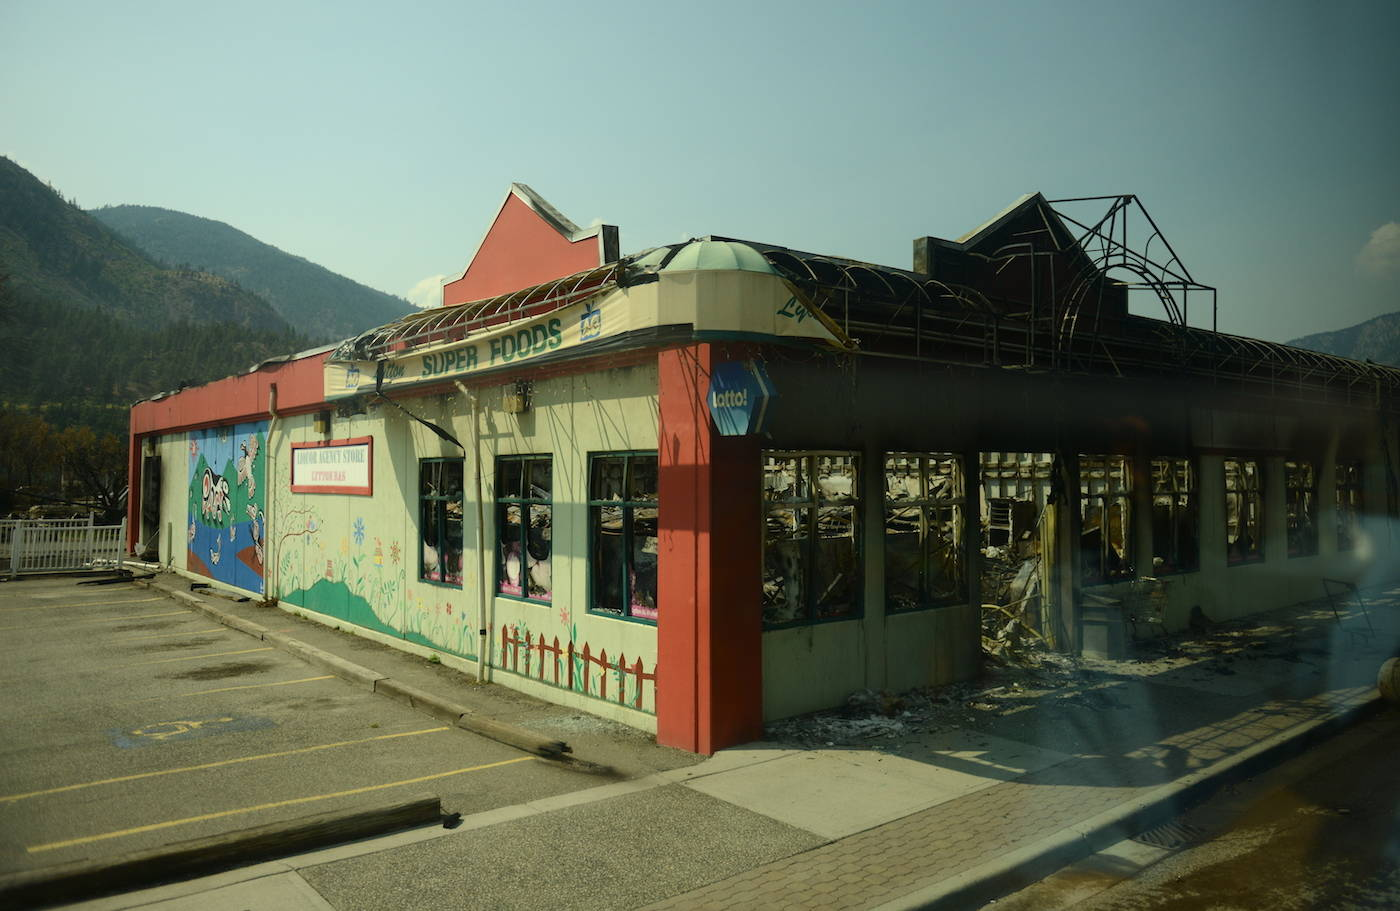 The Lytton Super Foods grocery store in Lytton, B.C. on Friday, July 9, 2021, nine days after a wildfire ripped through the village on June 30, 2021. (Jenna Hauck/ Black Press Media)